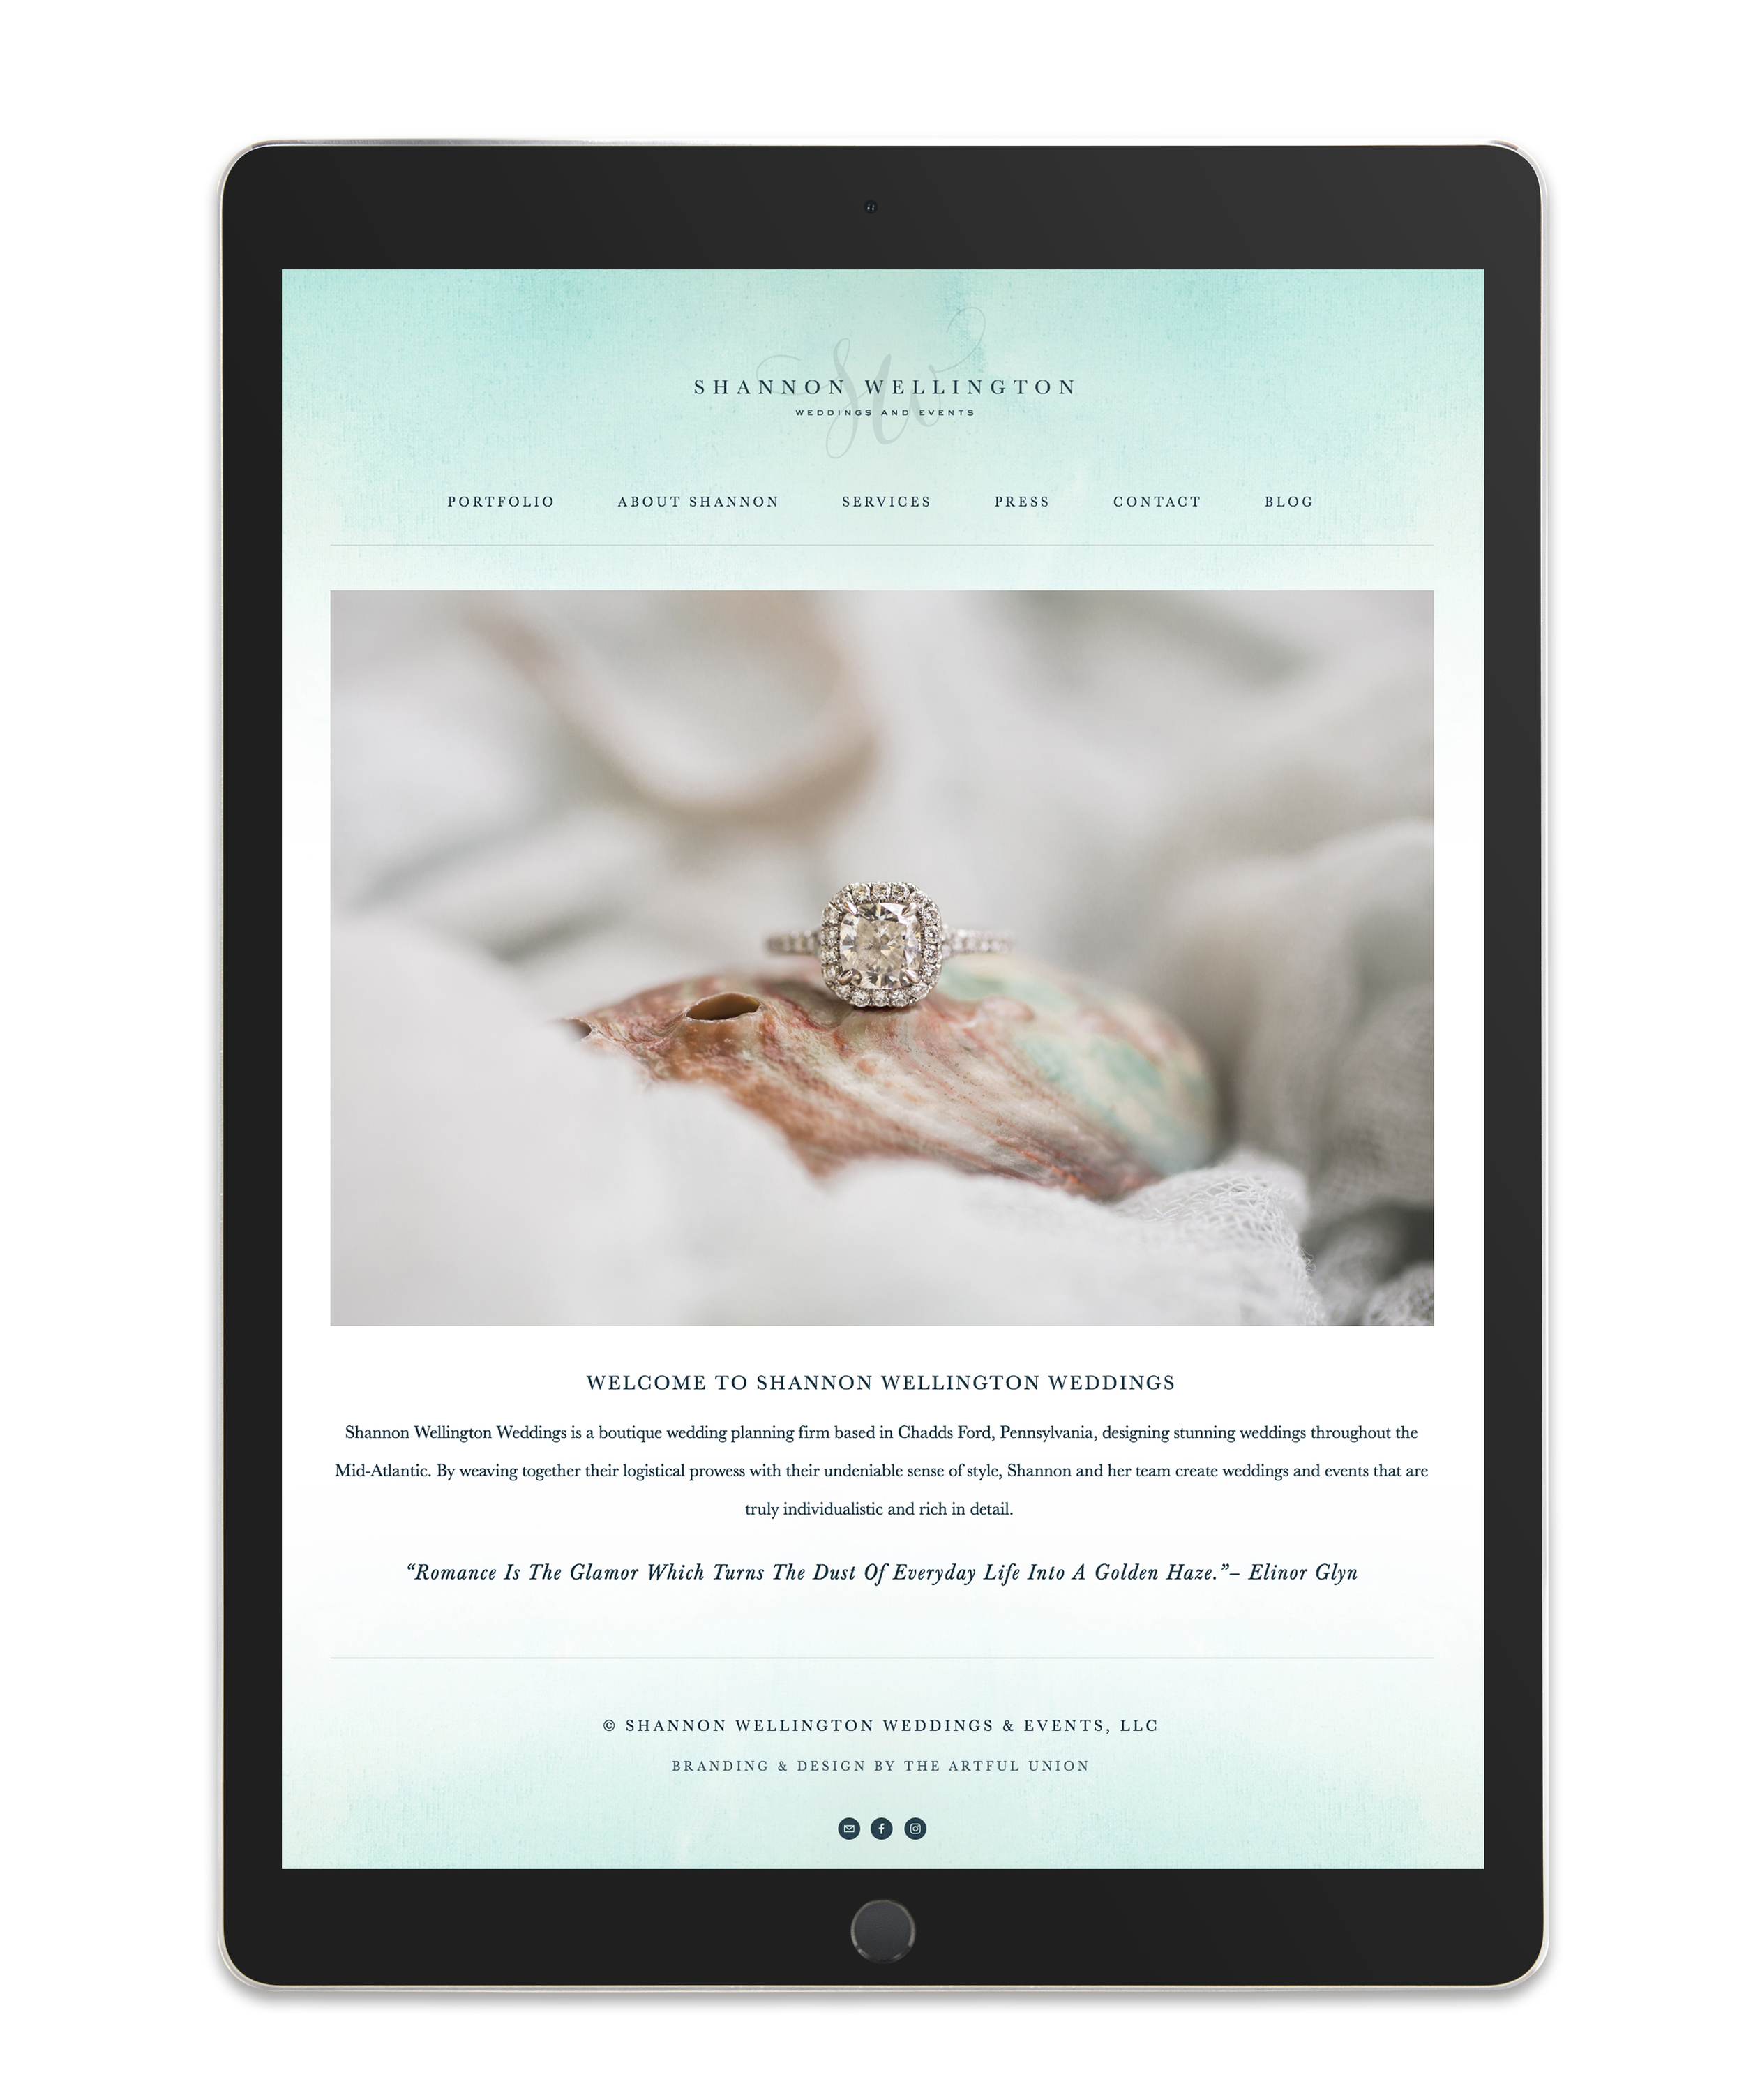 04_Shannon-Wellington-Weddings-Website-Design-Ipad.jpg